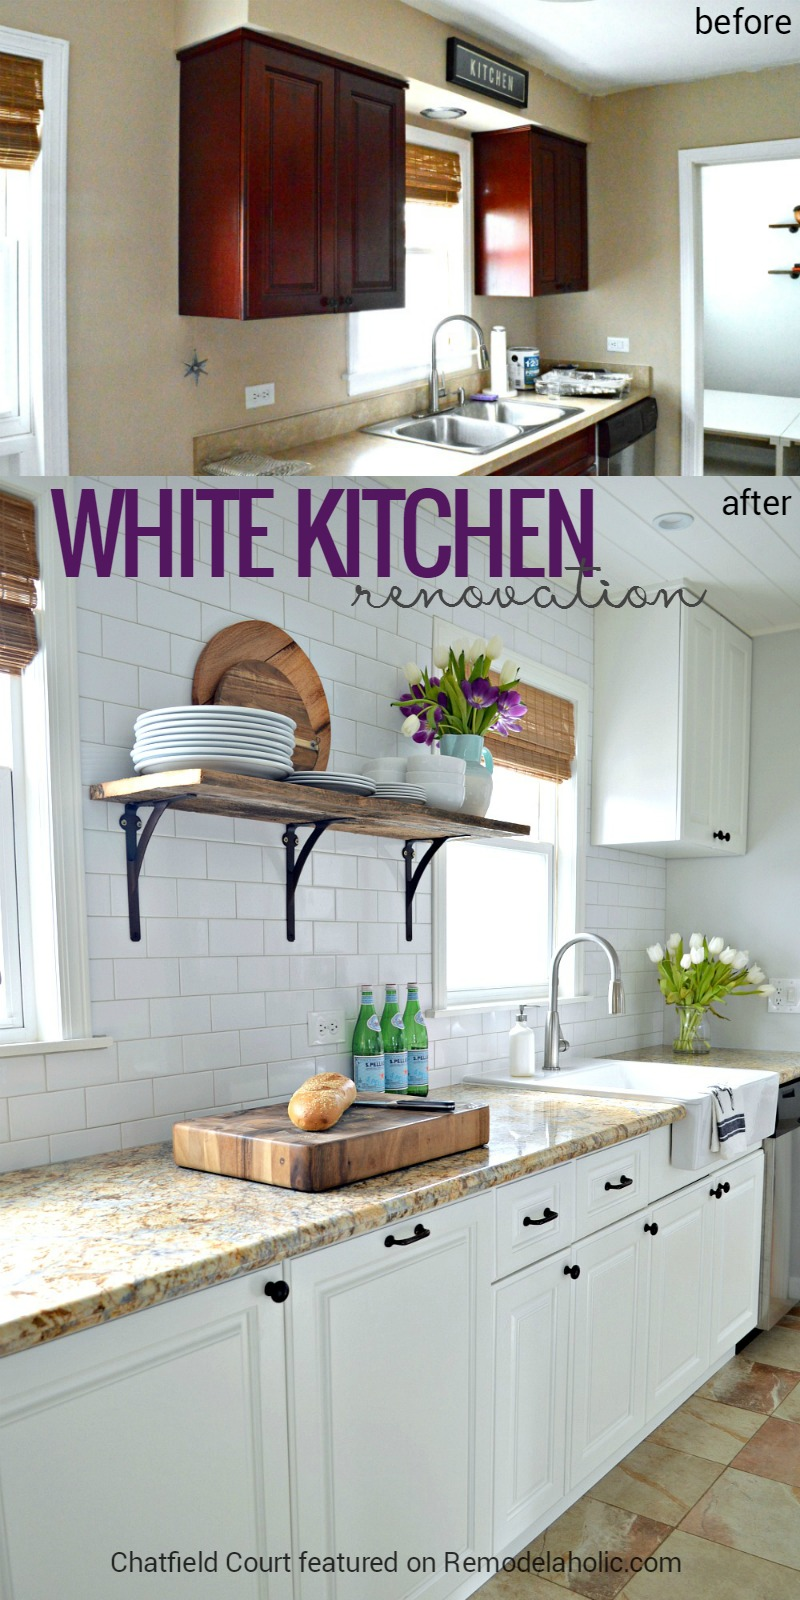 Remodelaholic | DIY Plank Ceiling in a Beautiful White Kitchen ...